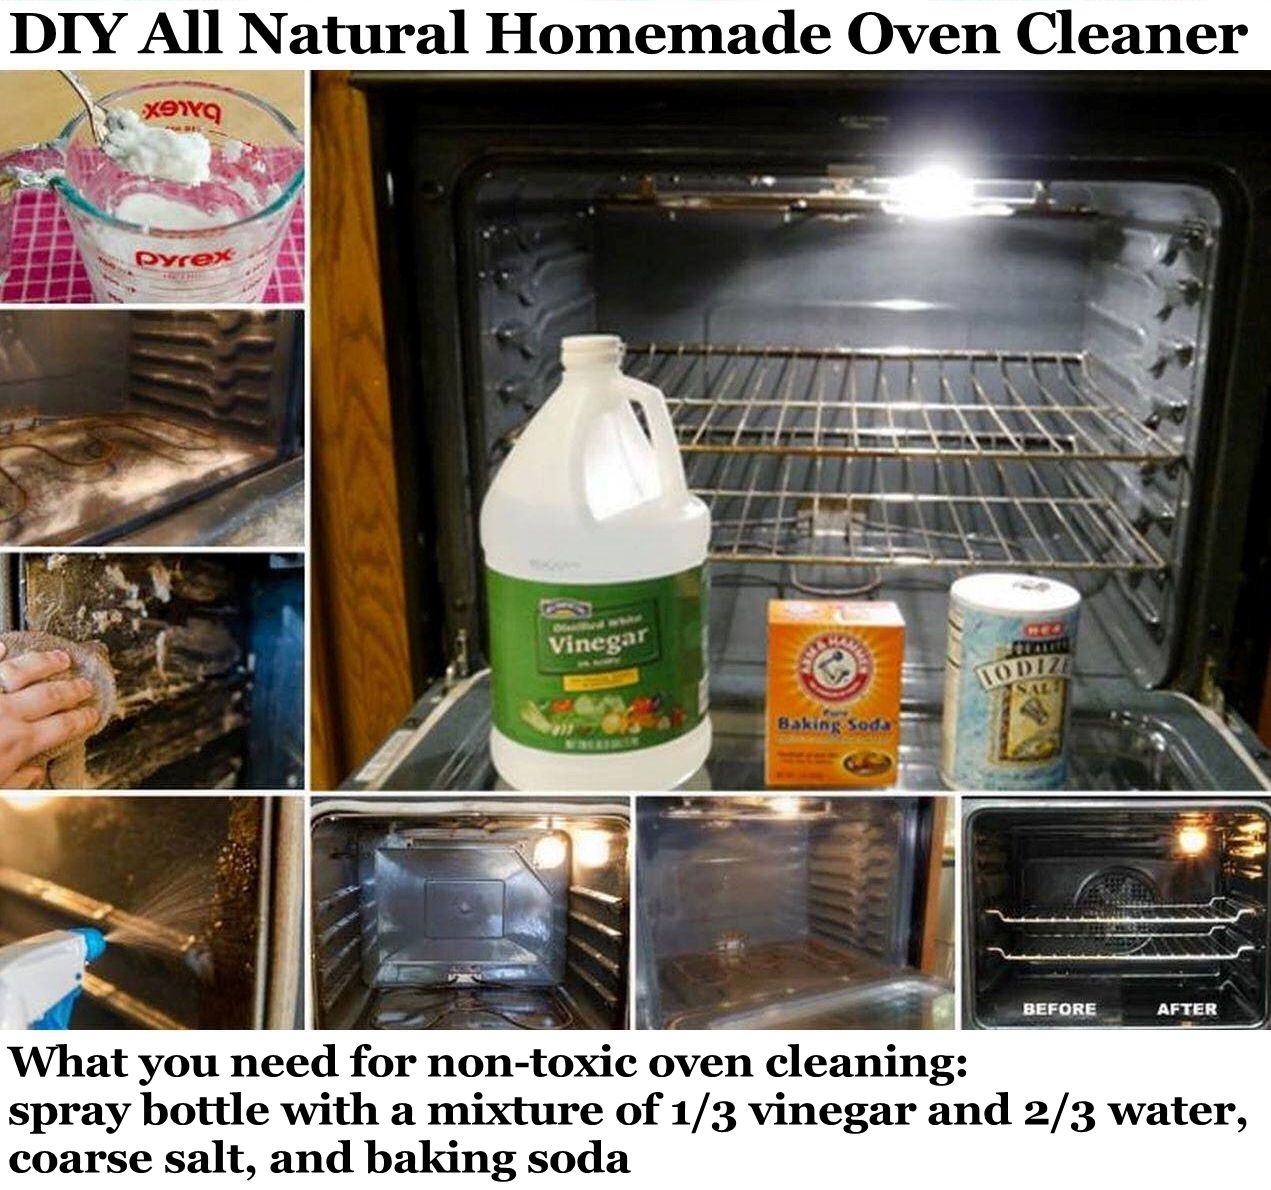 diy all natural homemade oven cleaner pictures, photos, and images